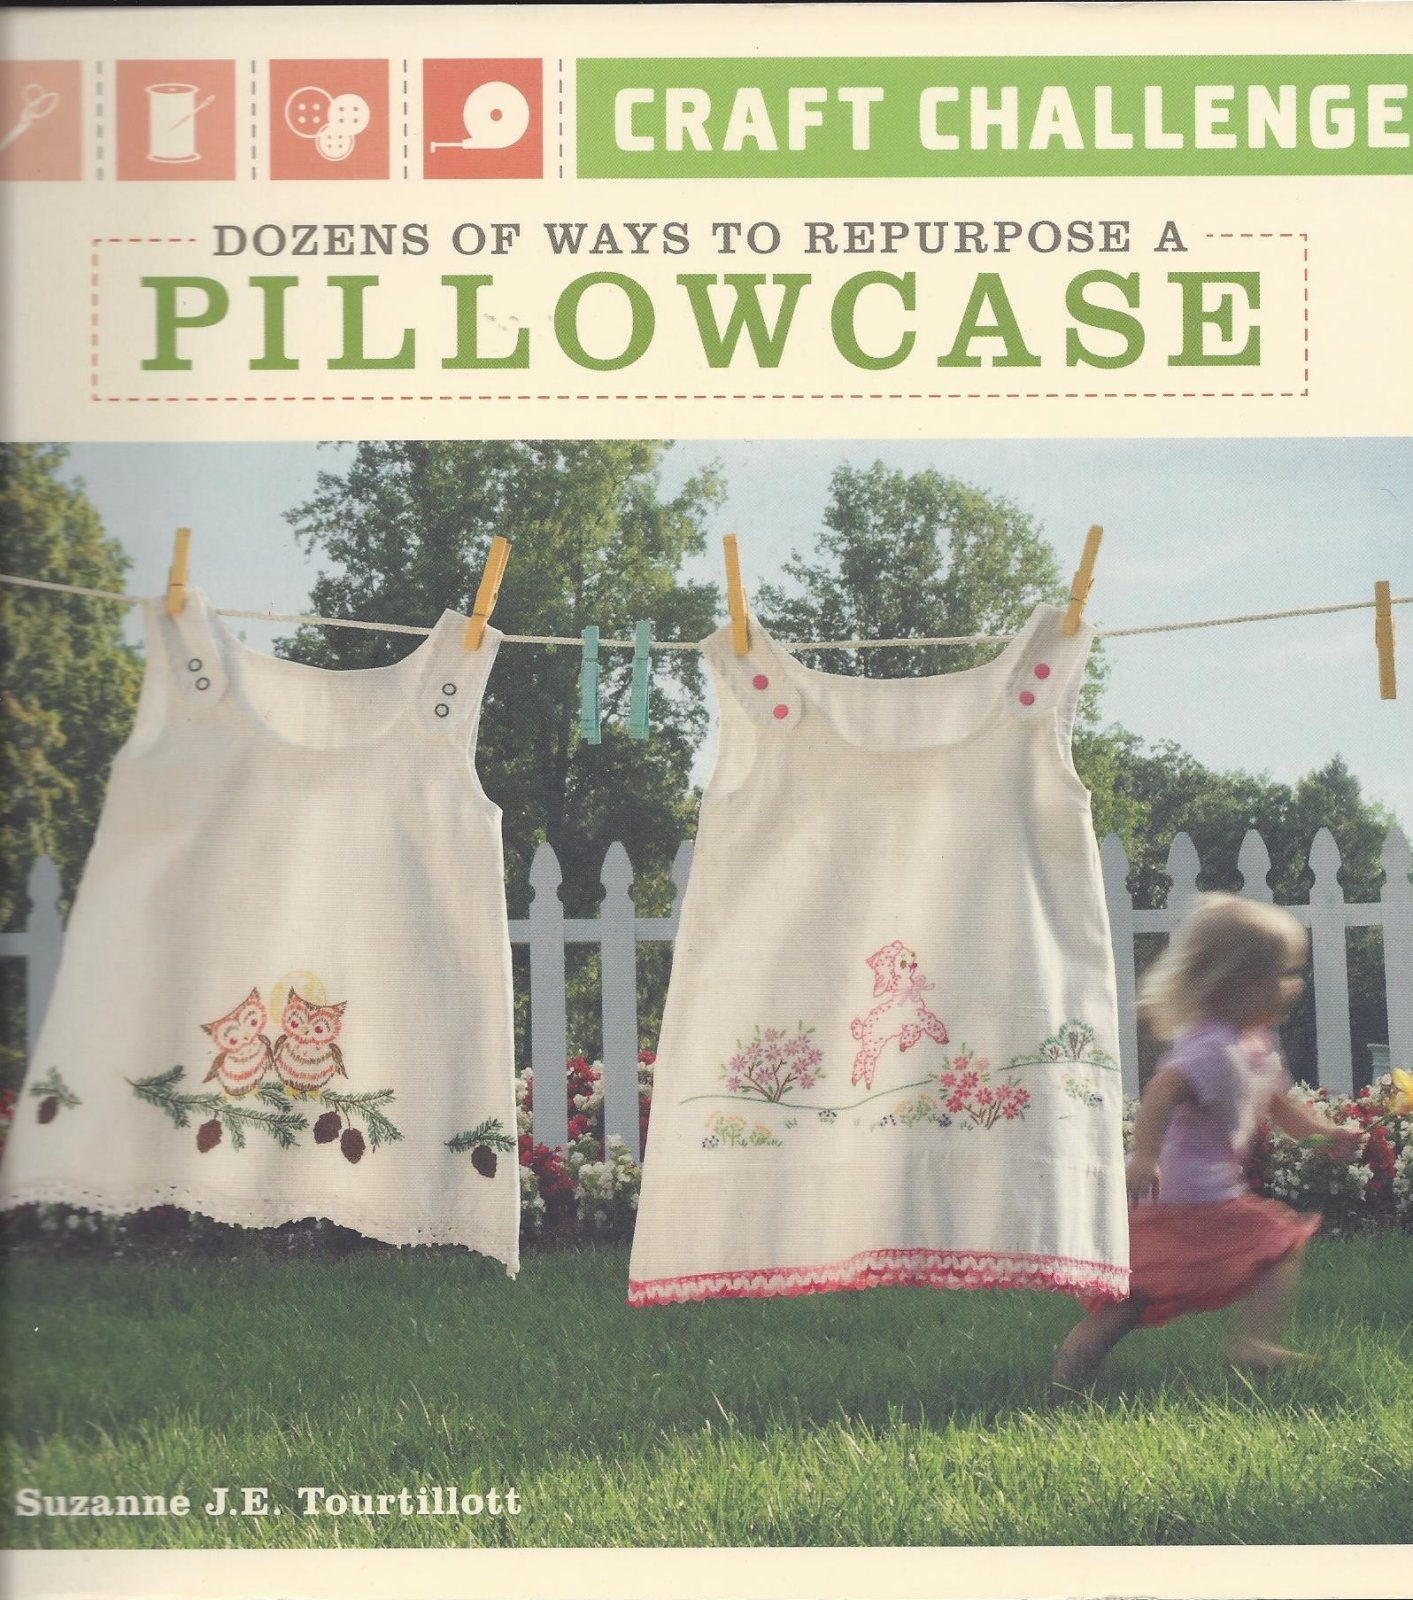 Craft Challenge - Pillowcase